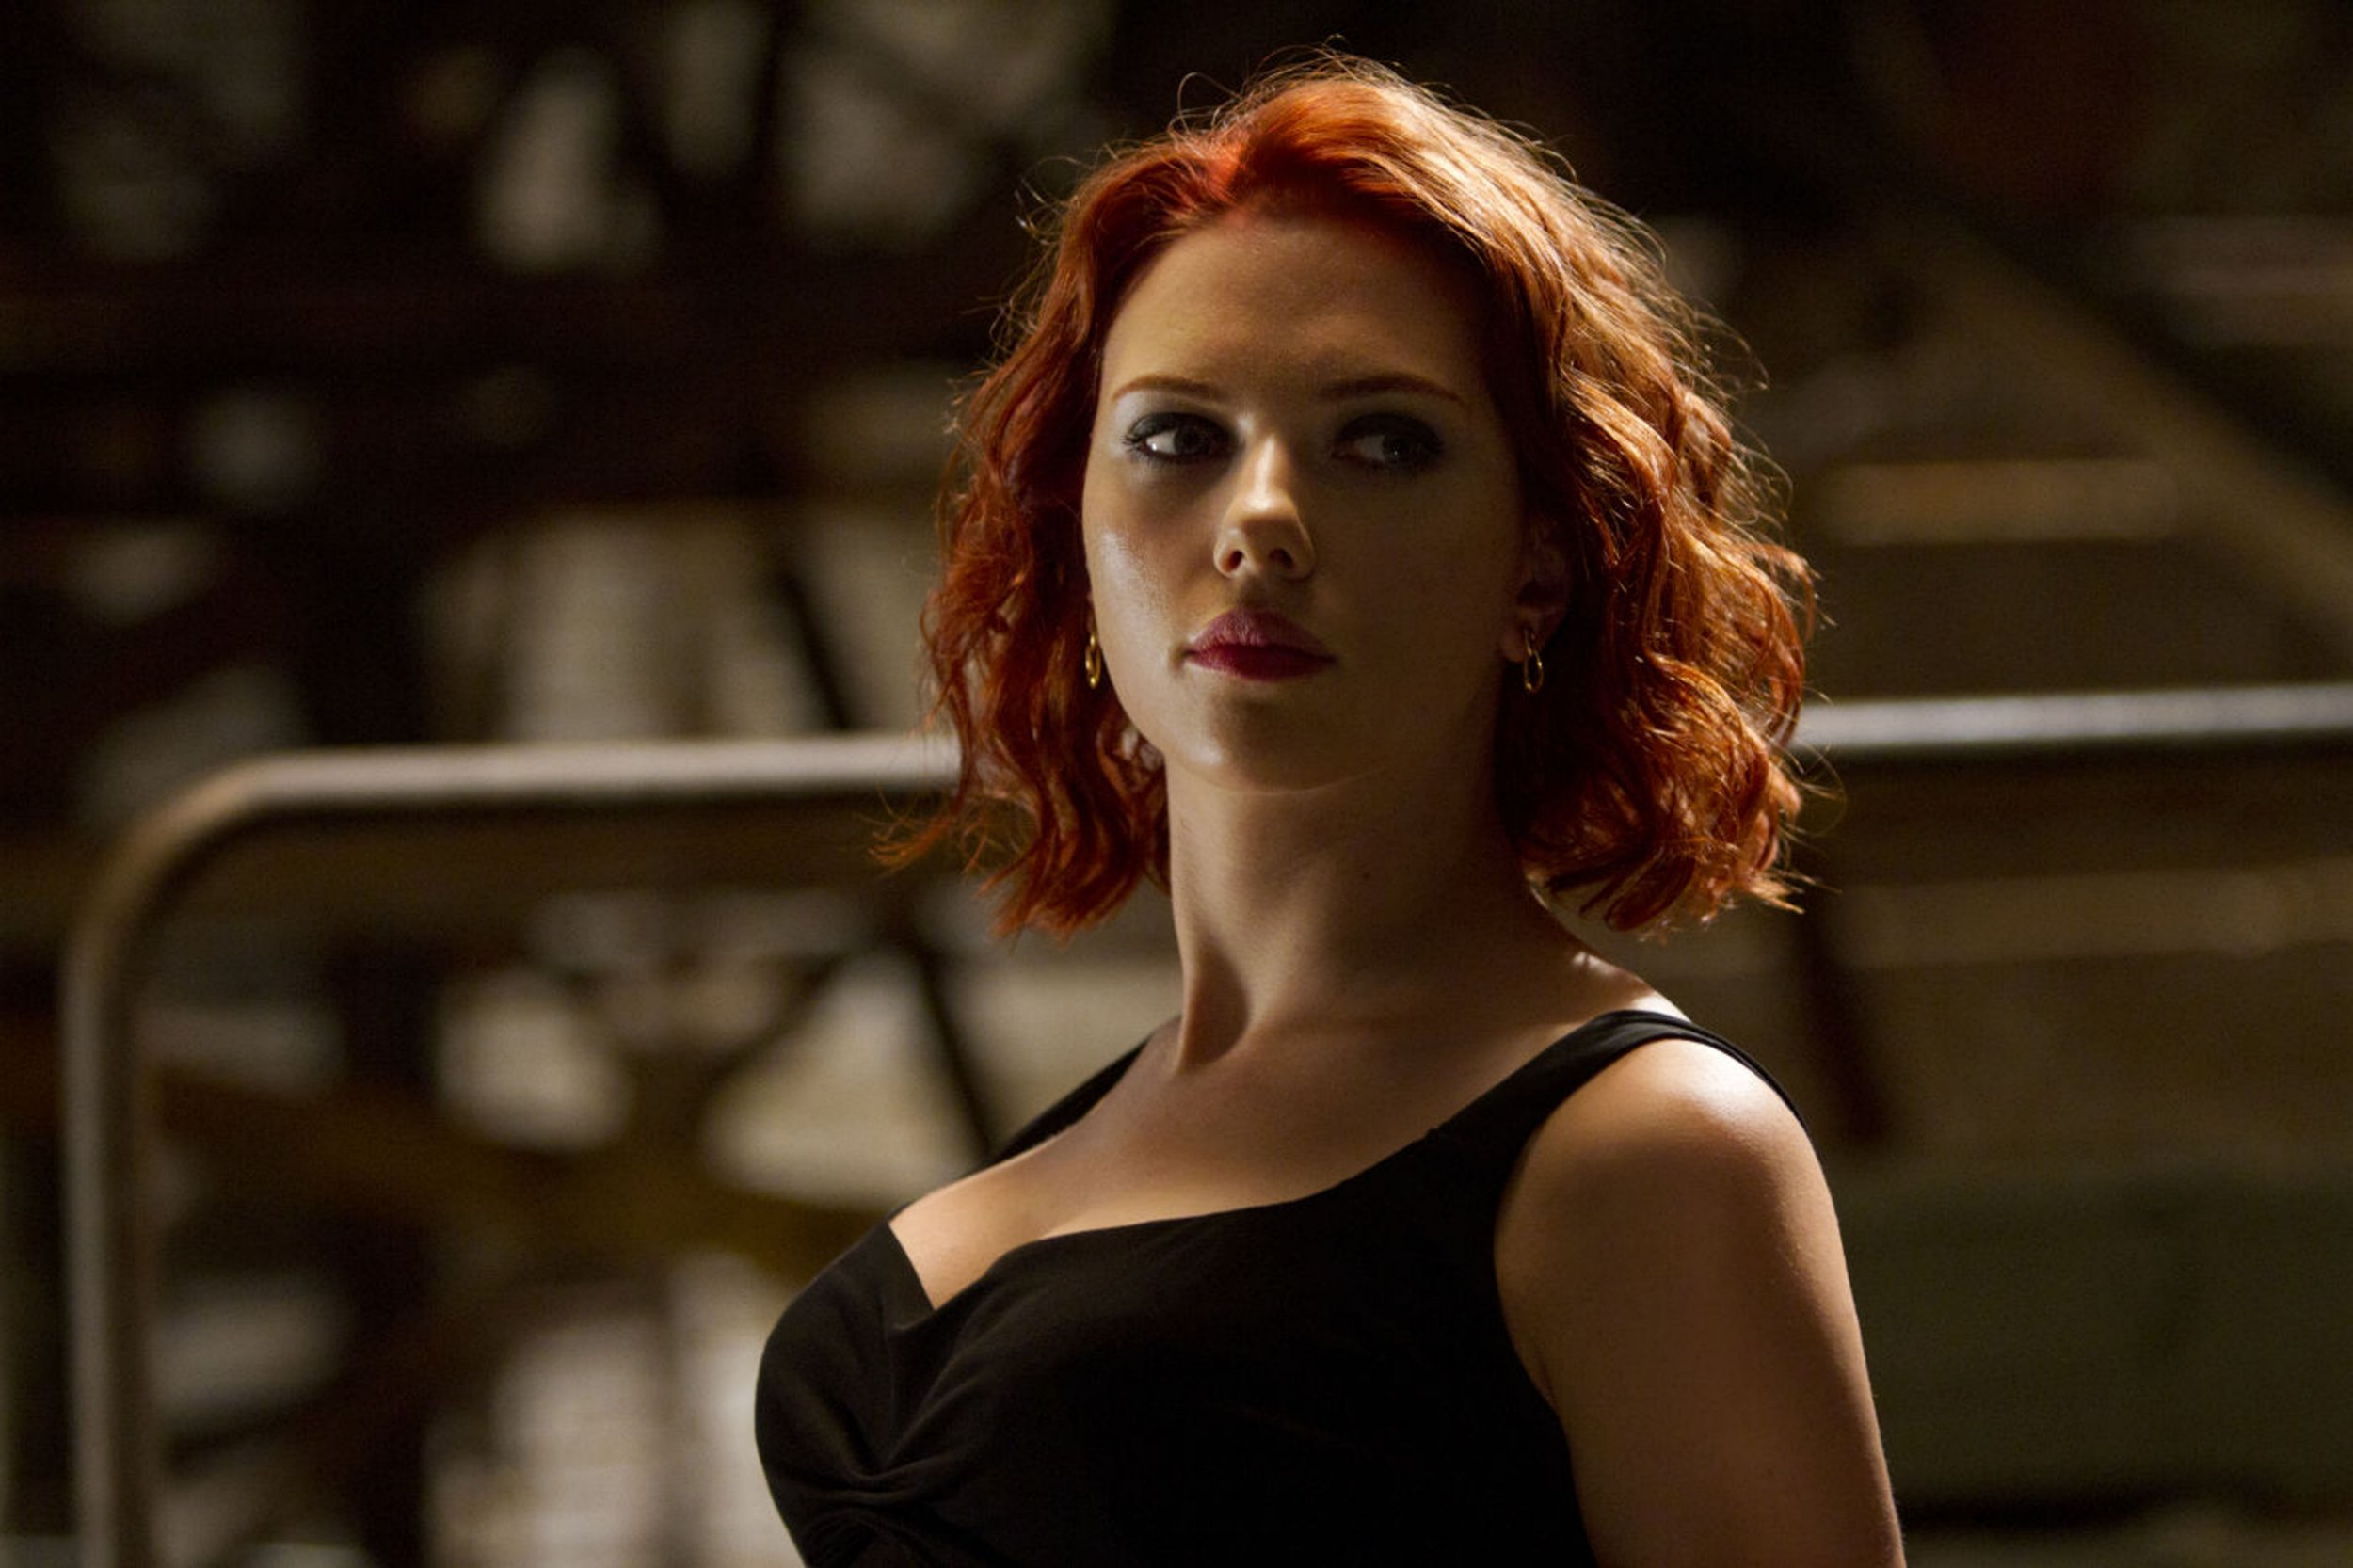 Editorial use only. No book cover usage. Mandatory Credit: Photo by Moviestore/REX/Shutterstock (1586575d) The Avengers - Scarlett Johansson (as Natasha Romanoff/Black Widow) The Avengers - 2012